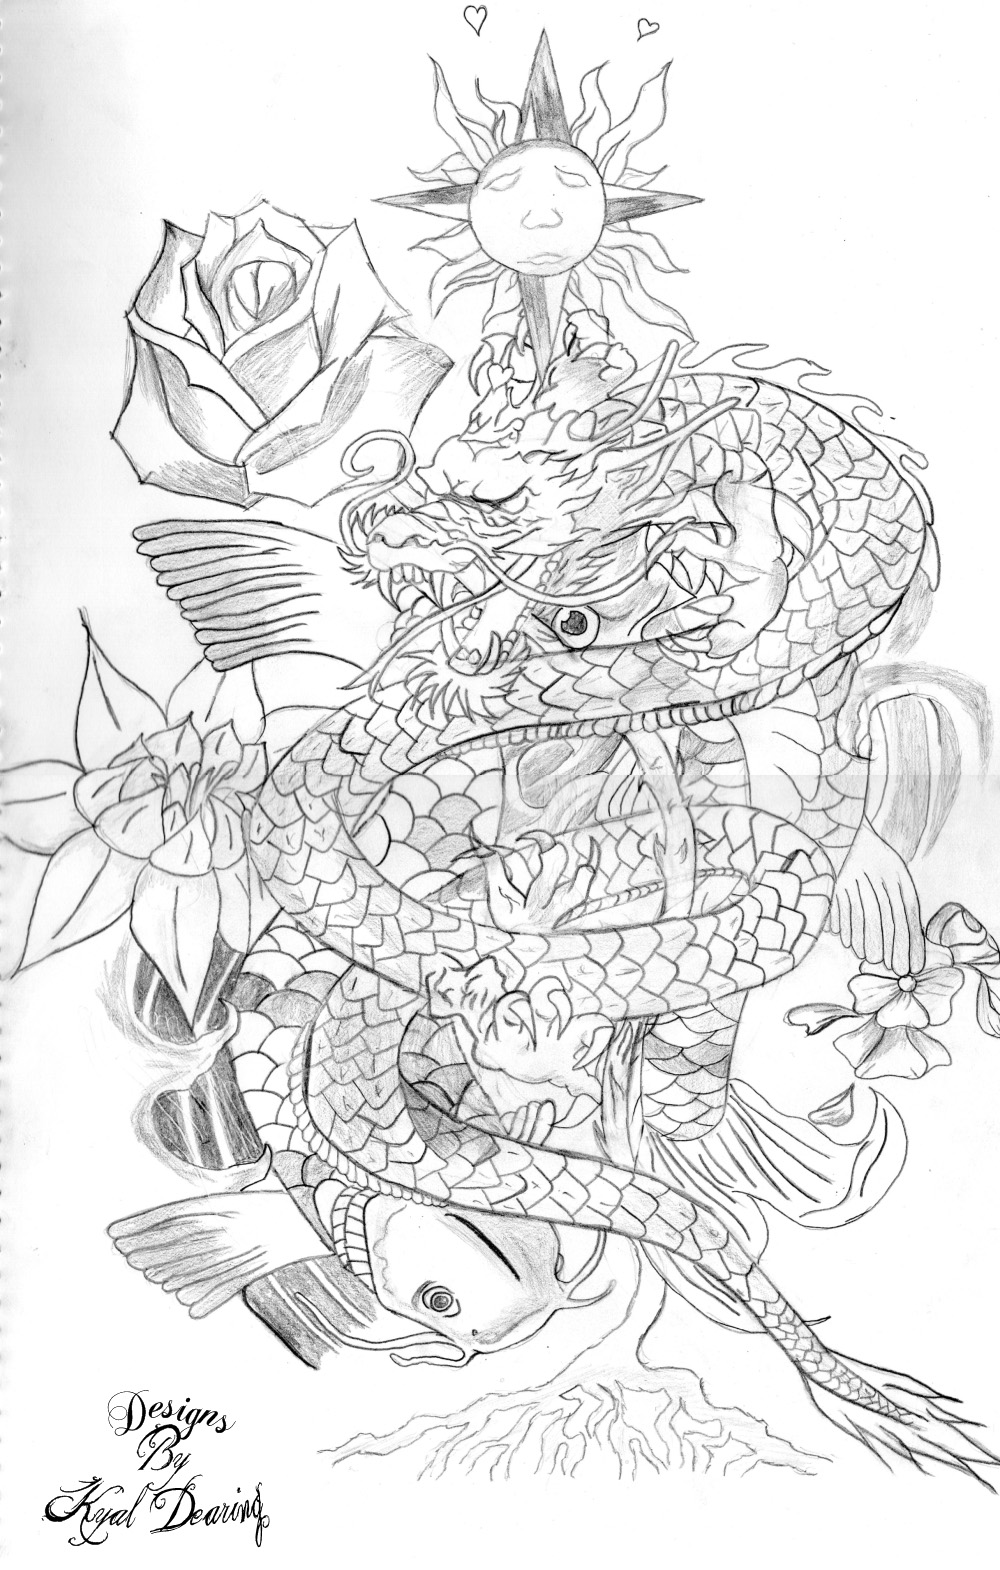 dragon koi fish tattoo design by designsbykyaldearing on deviantart. Black Bedroom Furniture Sets. Home Design Ideas